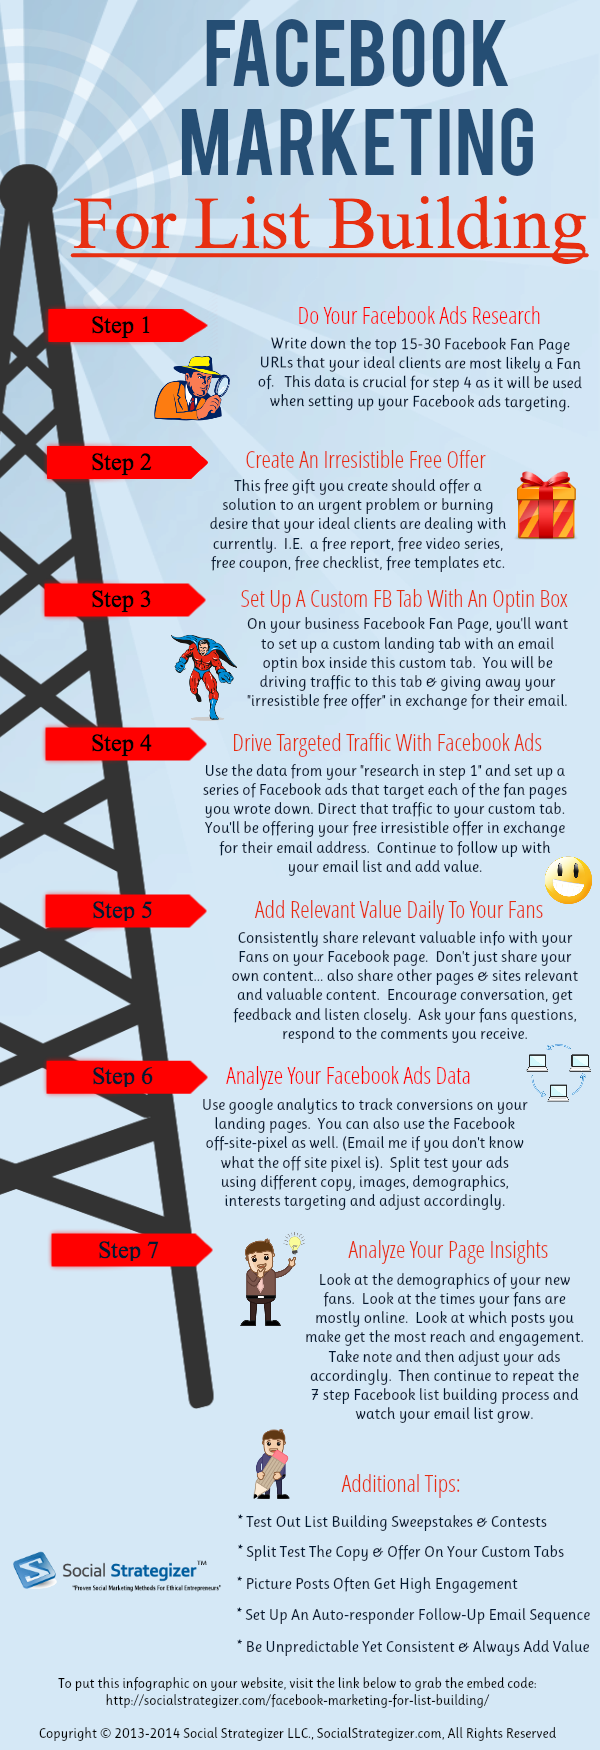 Facebook For Email List Building [INFOGRAPHIC]